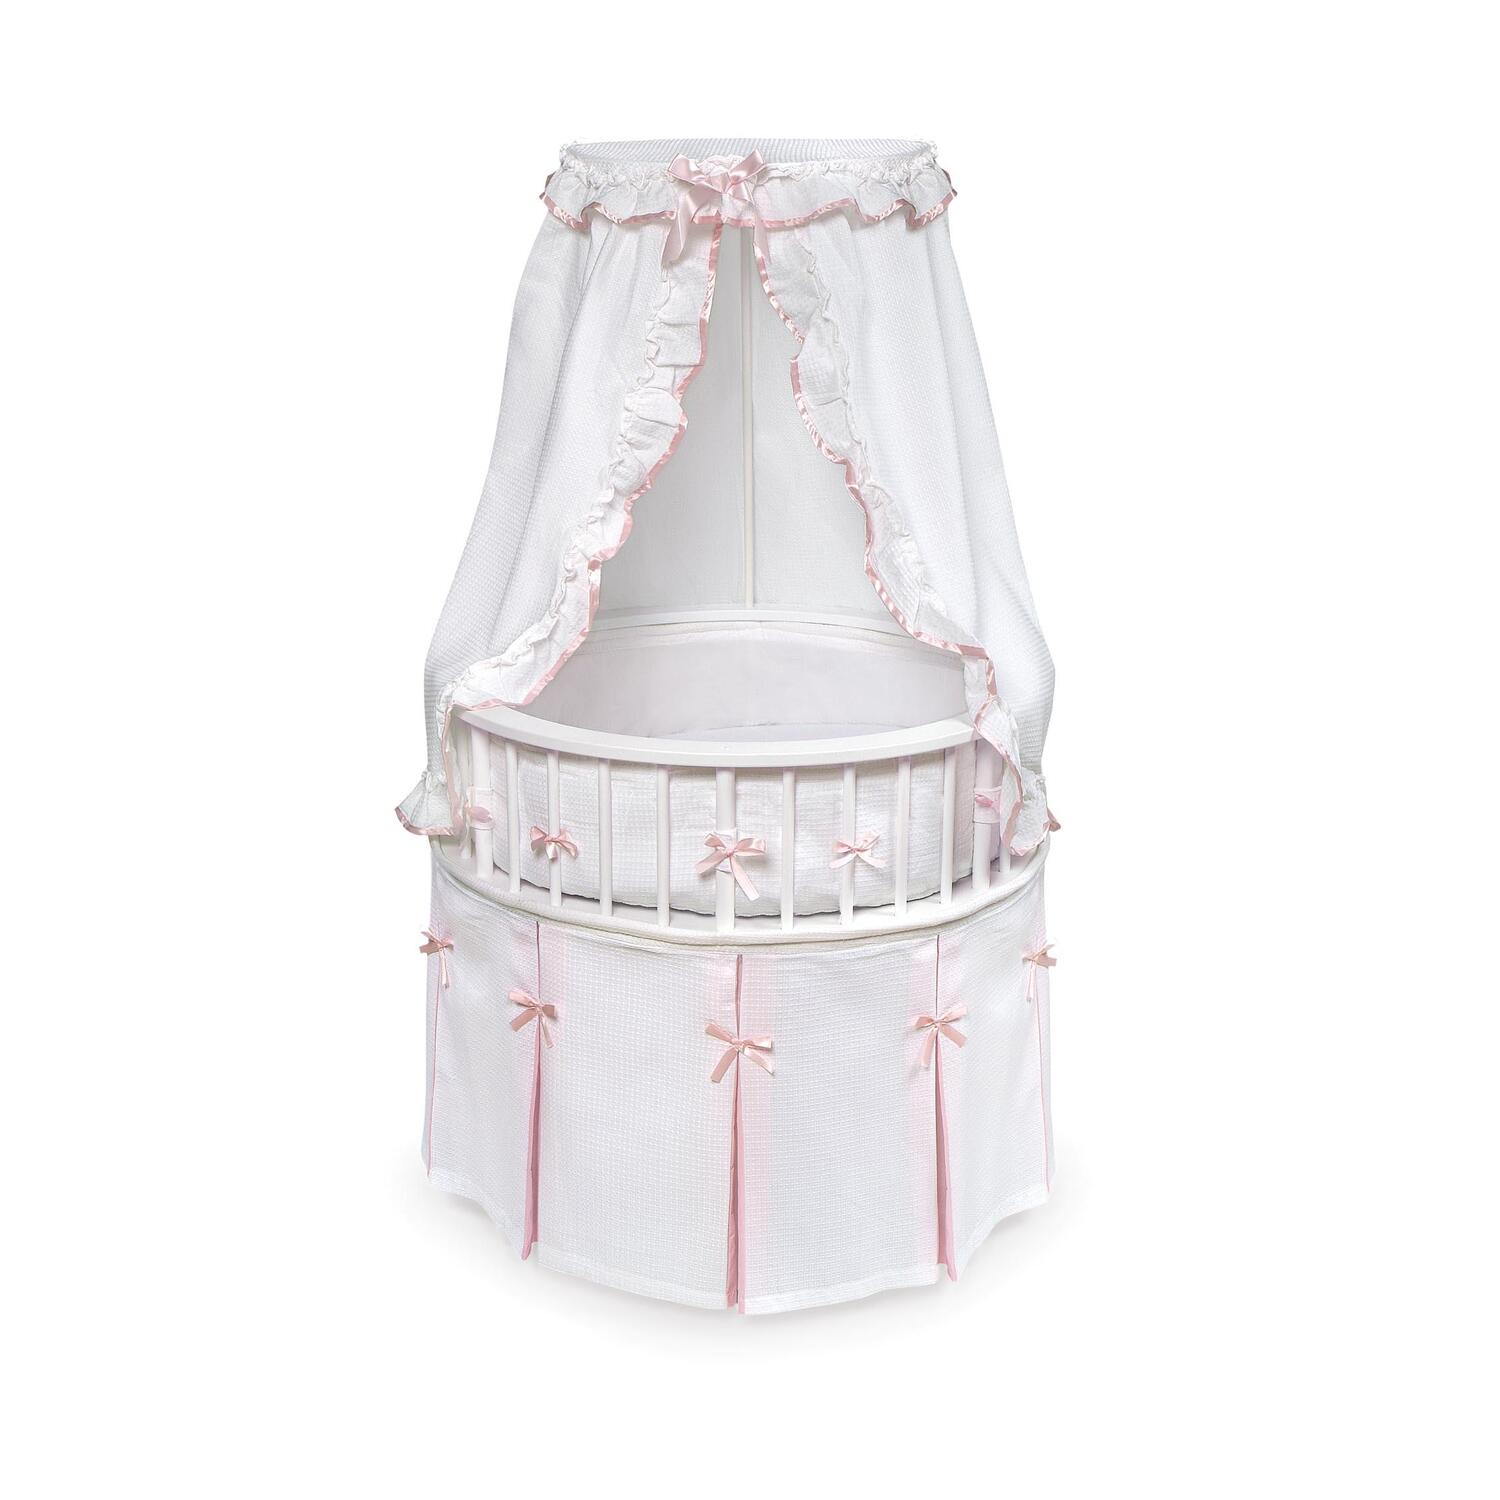 Badger Basket Elegance Round Baby Bassinet by OJ Commerce 00831 ...